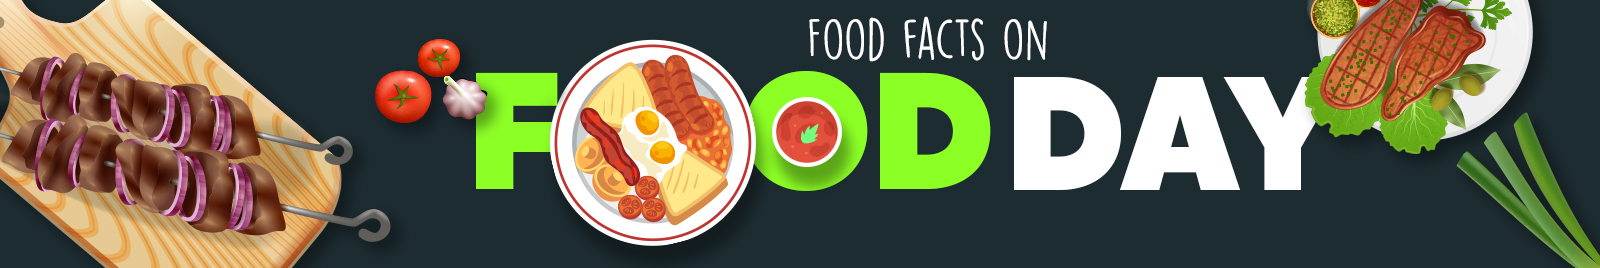 Food facts on Food Day